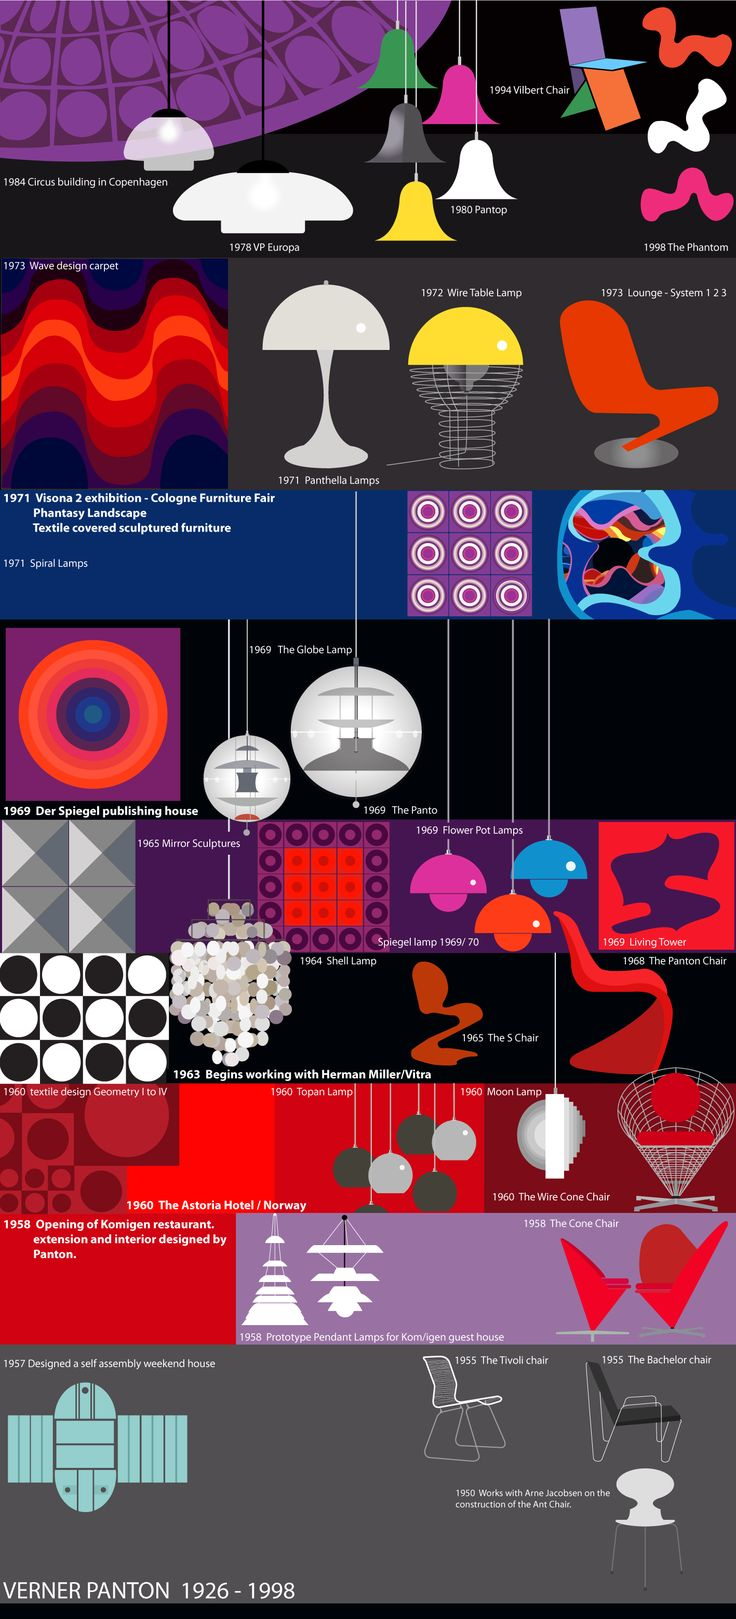 Verner Panton - Danish design crush timeline! illustrated by #sivellink